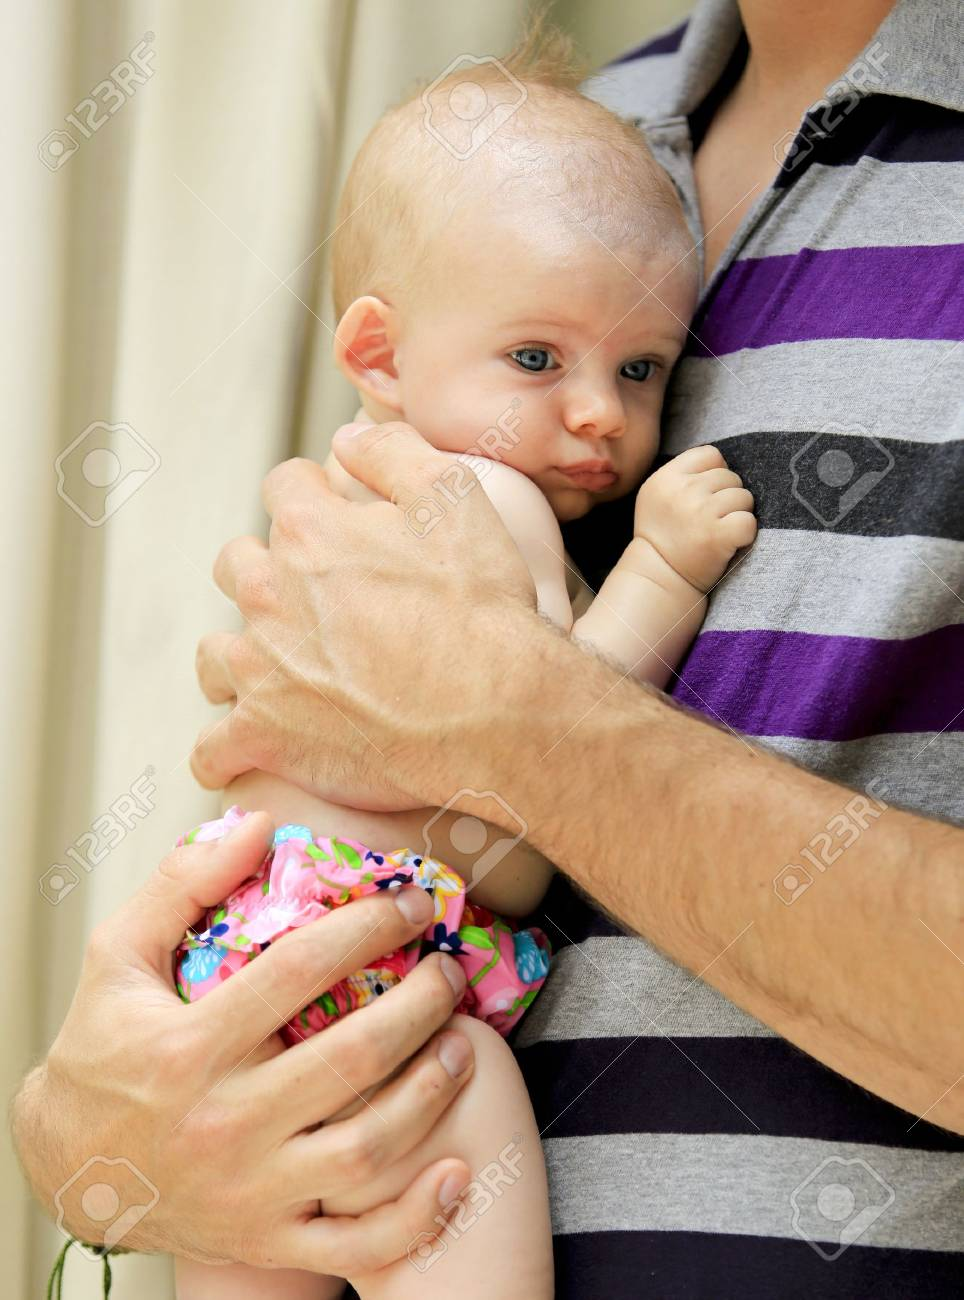 Three months old baby girl is held by her daddy near pool during vacation Stock Photo - 21729113